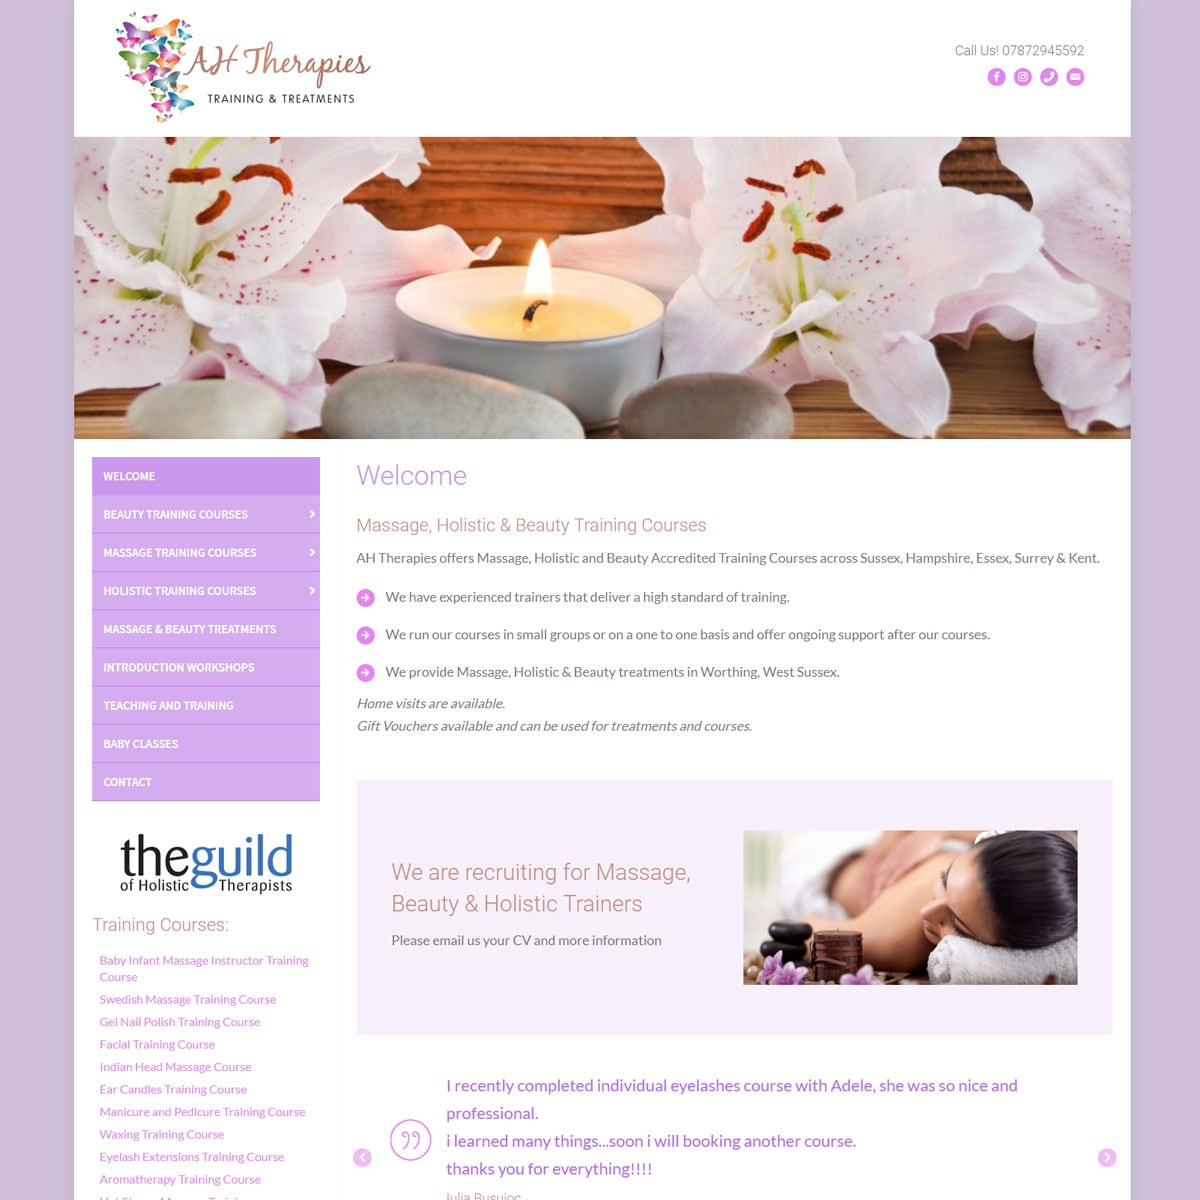 ahtherapies